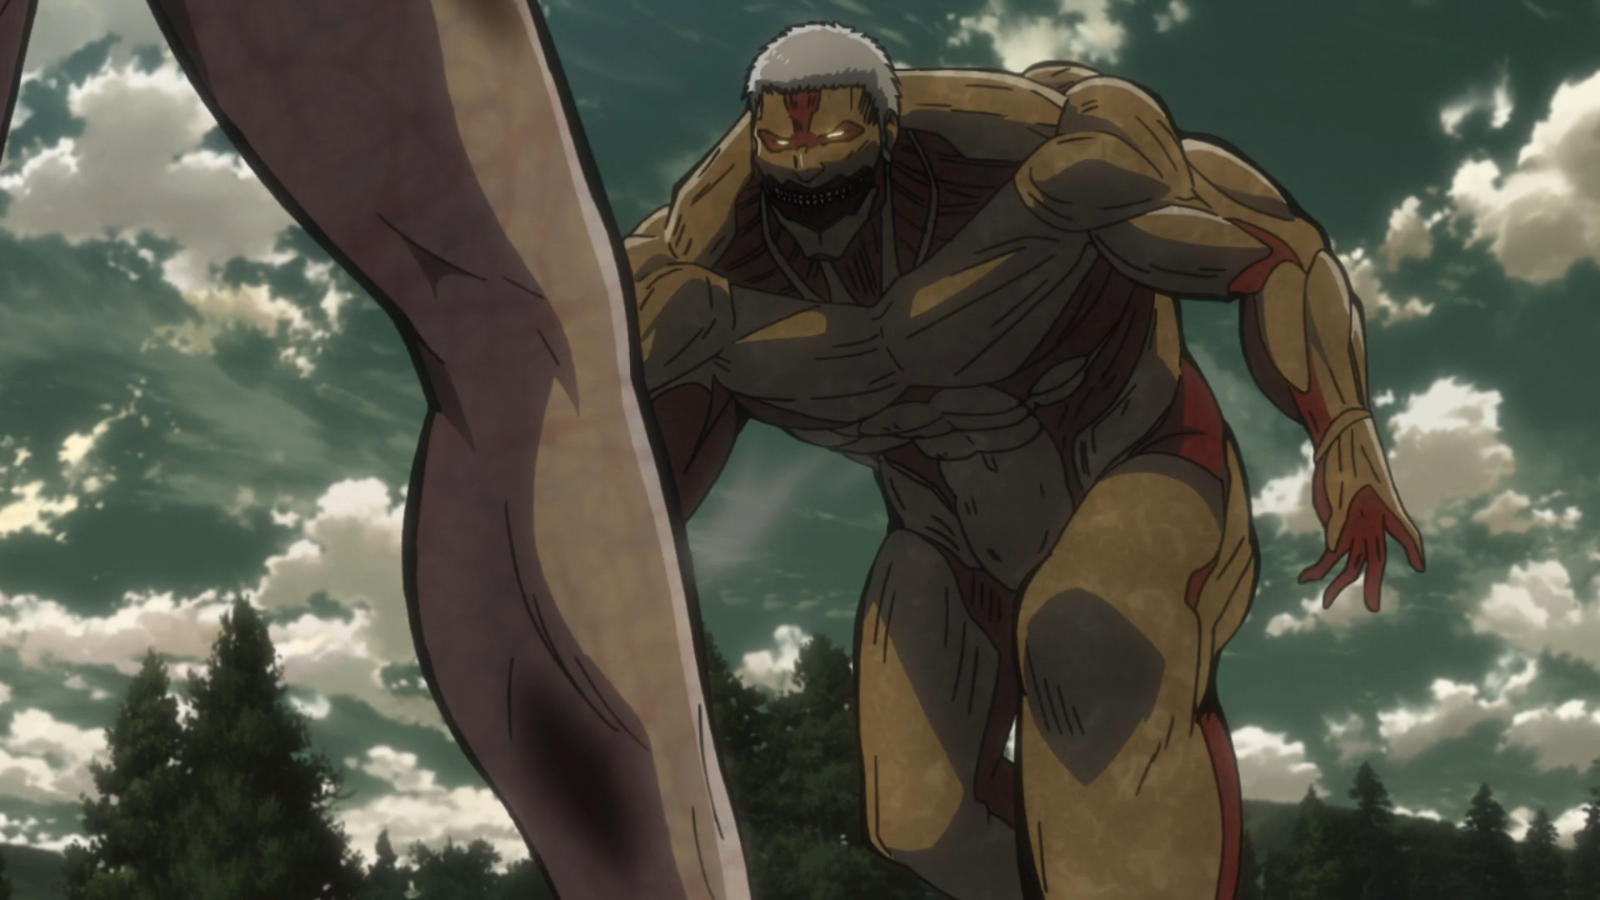 Image - The Armored Titan charges Eren.png | Attack on Titan Wiki | FANDOM powered by Wikia